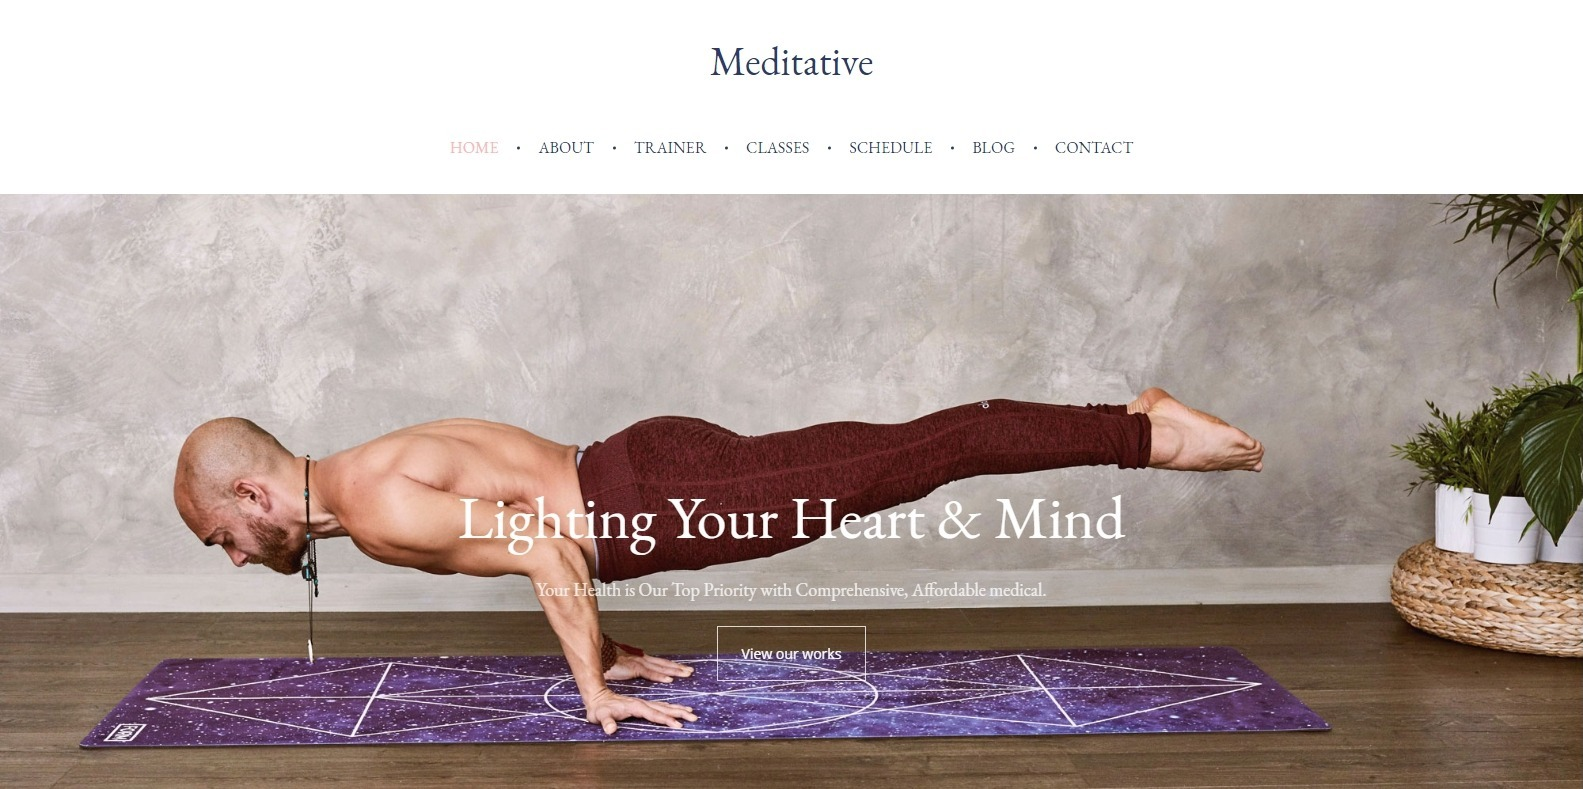 meditative-spa-website-template